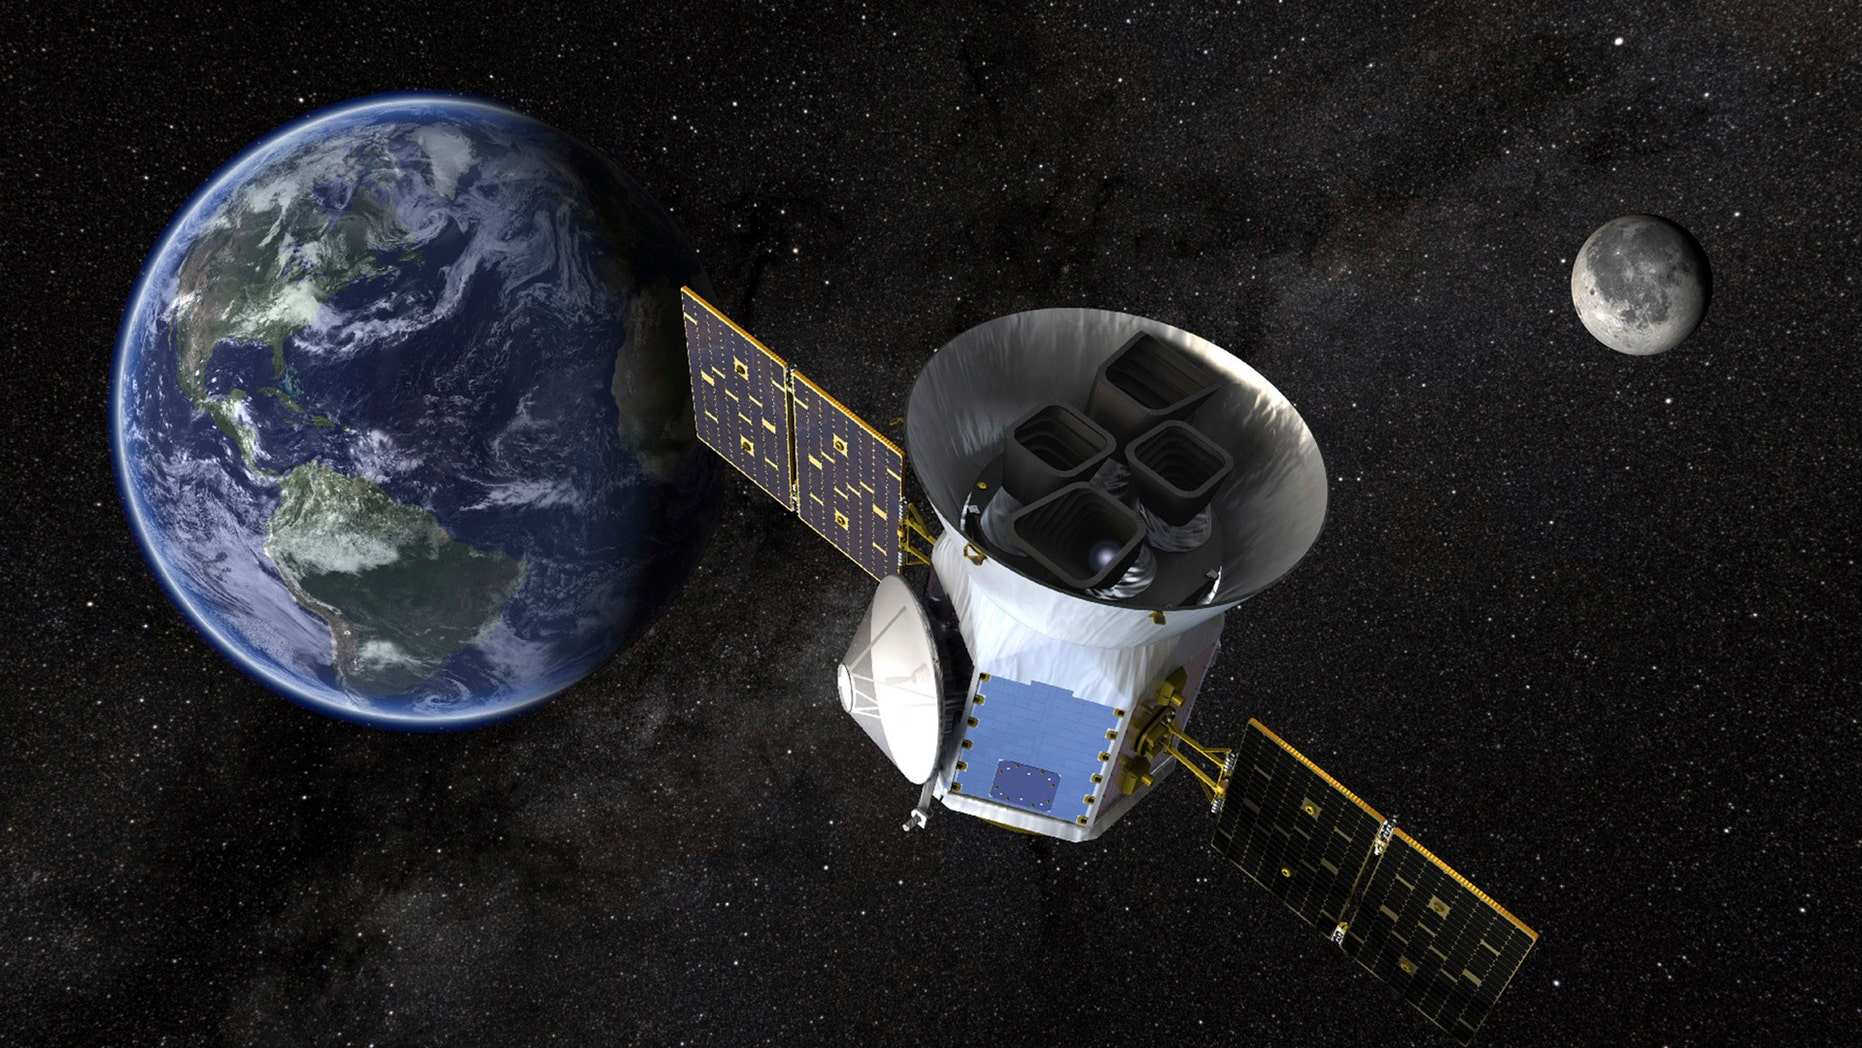 This image made available by NASA shows an illustration of the Transiting Exoplanet Survey Satellite (TESS). Scheduled for an April 2018 launch, the spacecraft will prowl for planets around the closest, brightest stars. These newfound worlds eventually will become prime targets for future telescopes looking to tease out any signs of life. (NASA via AP)